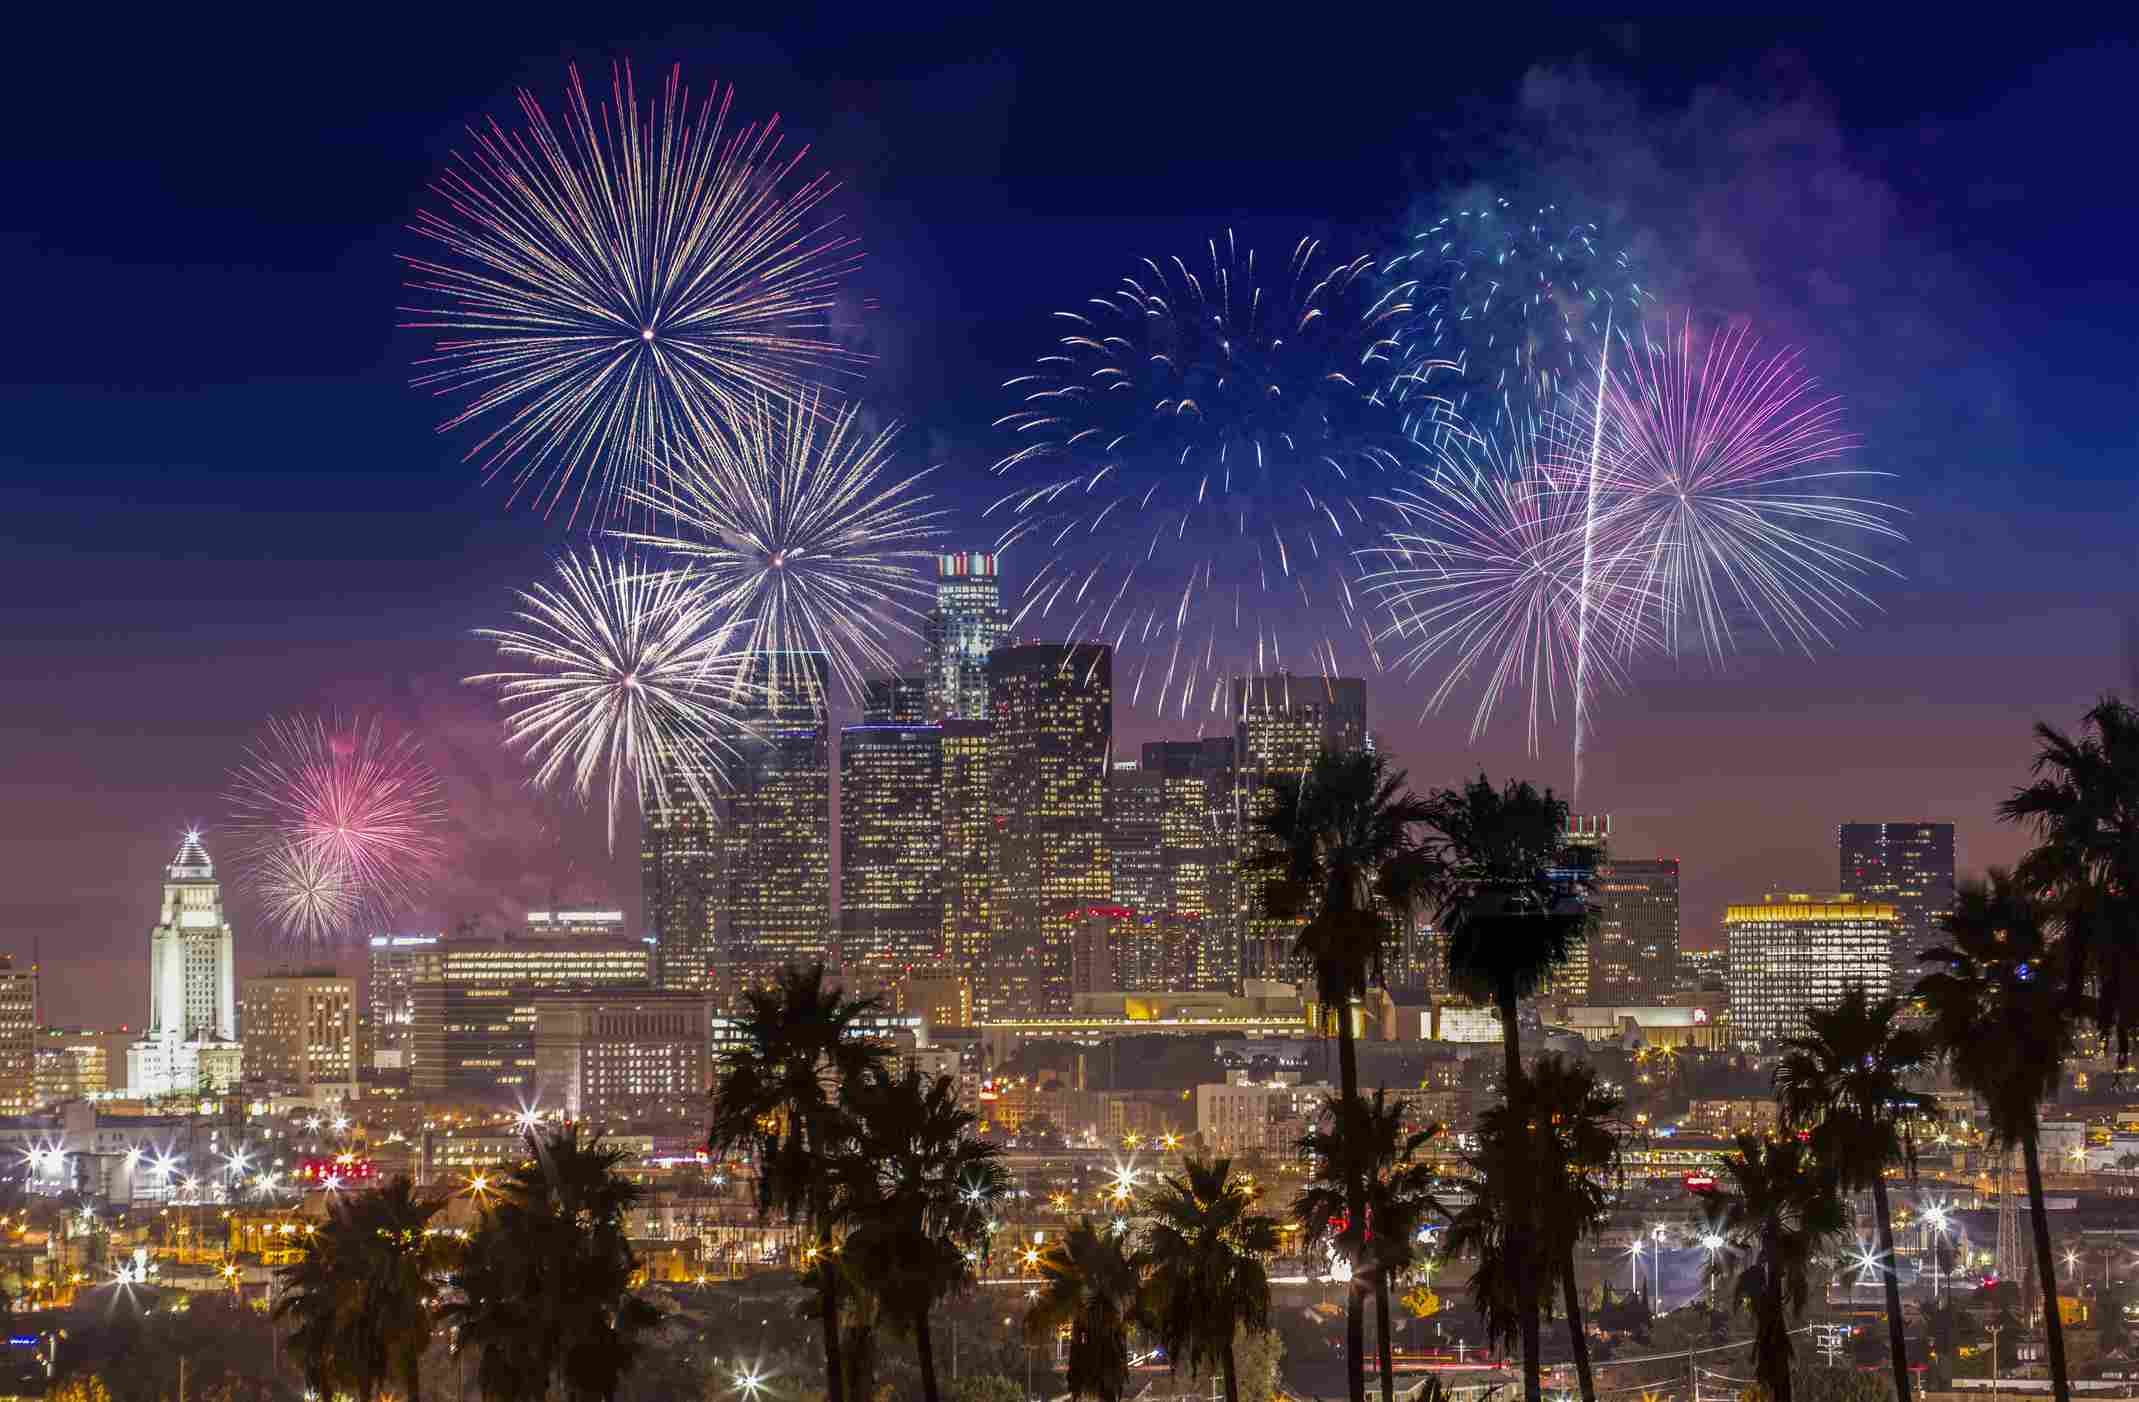 A stock photo of fireworks over Downtown Los Angeles, California